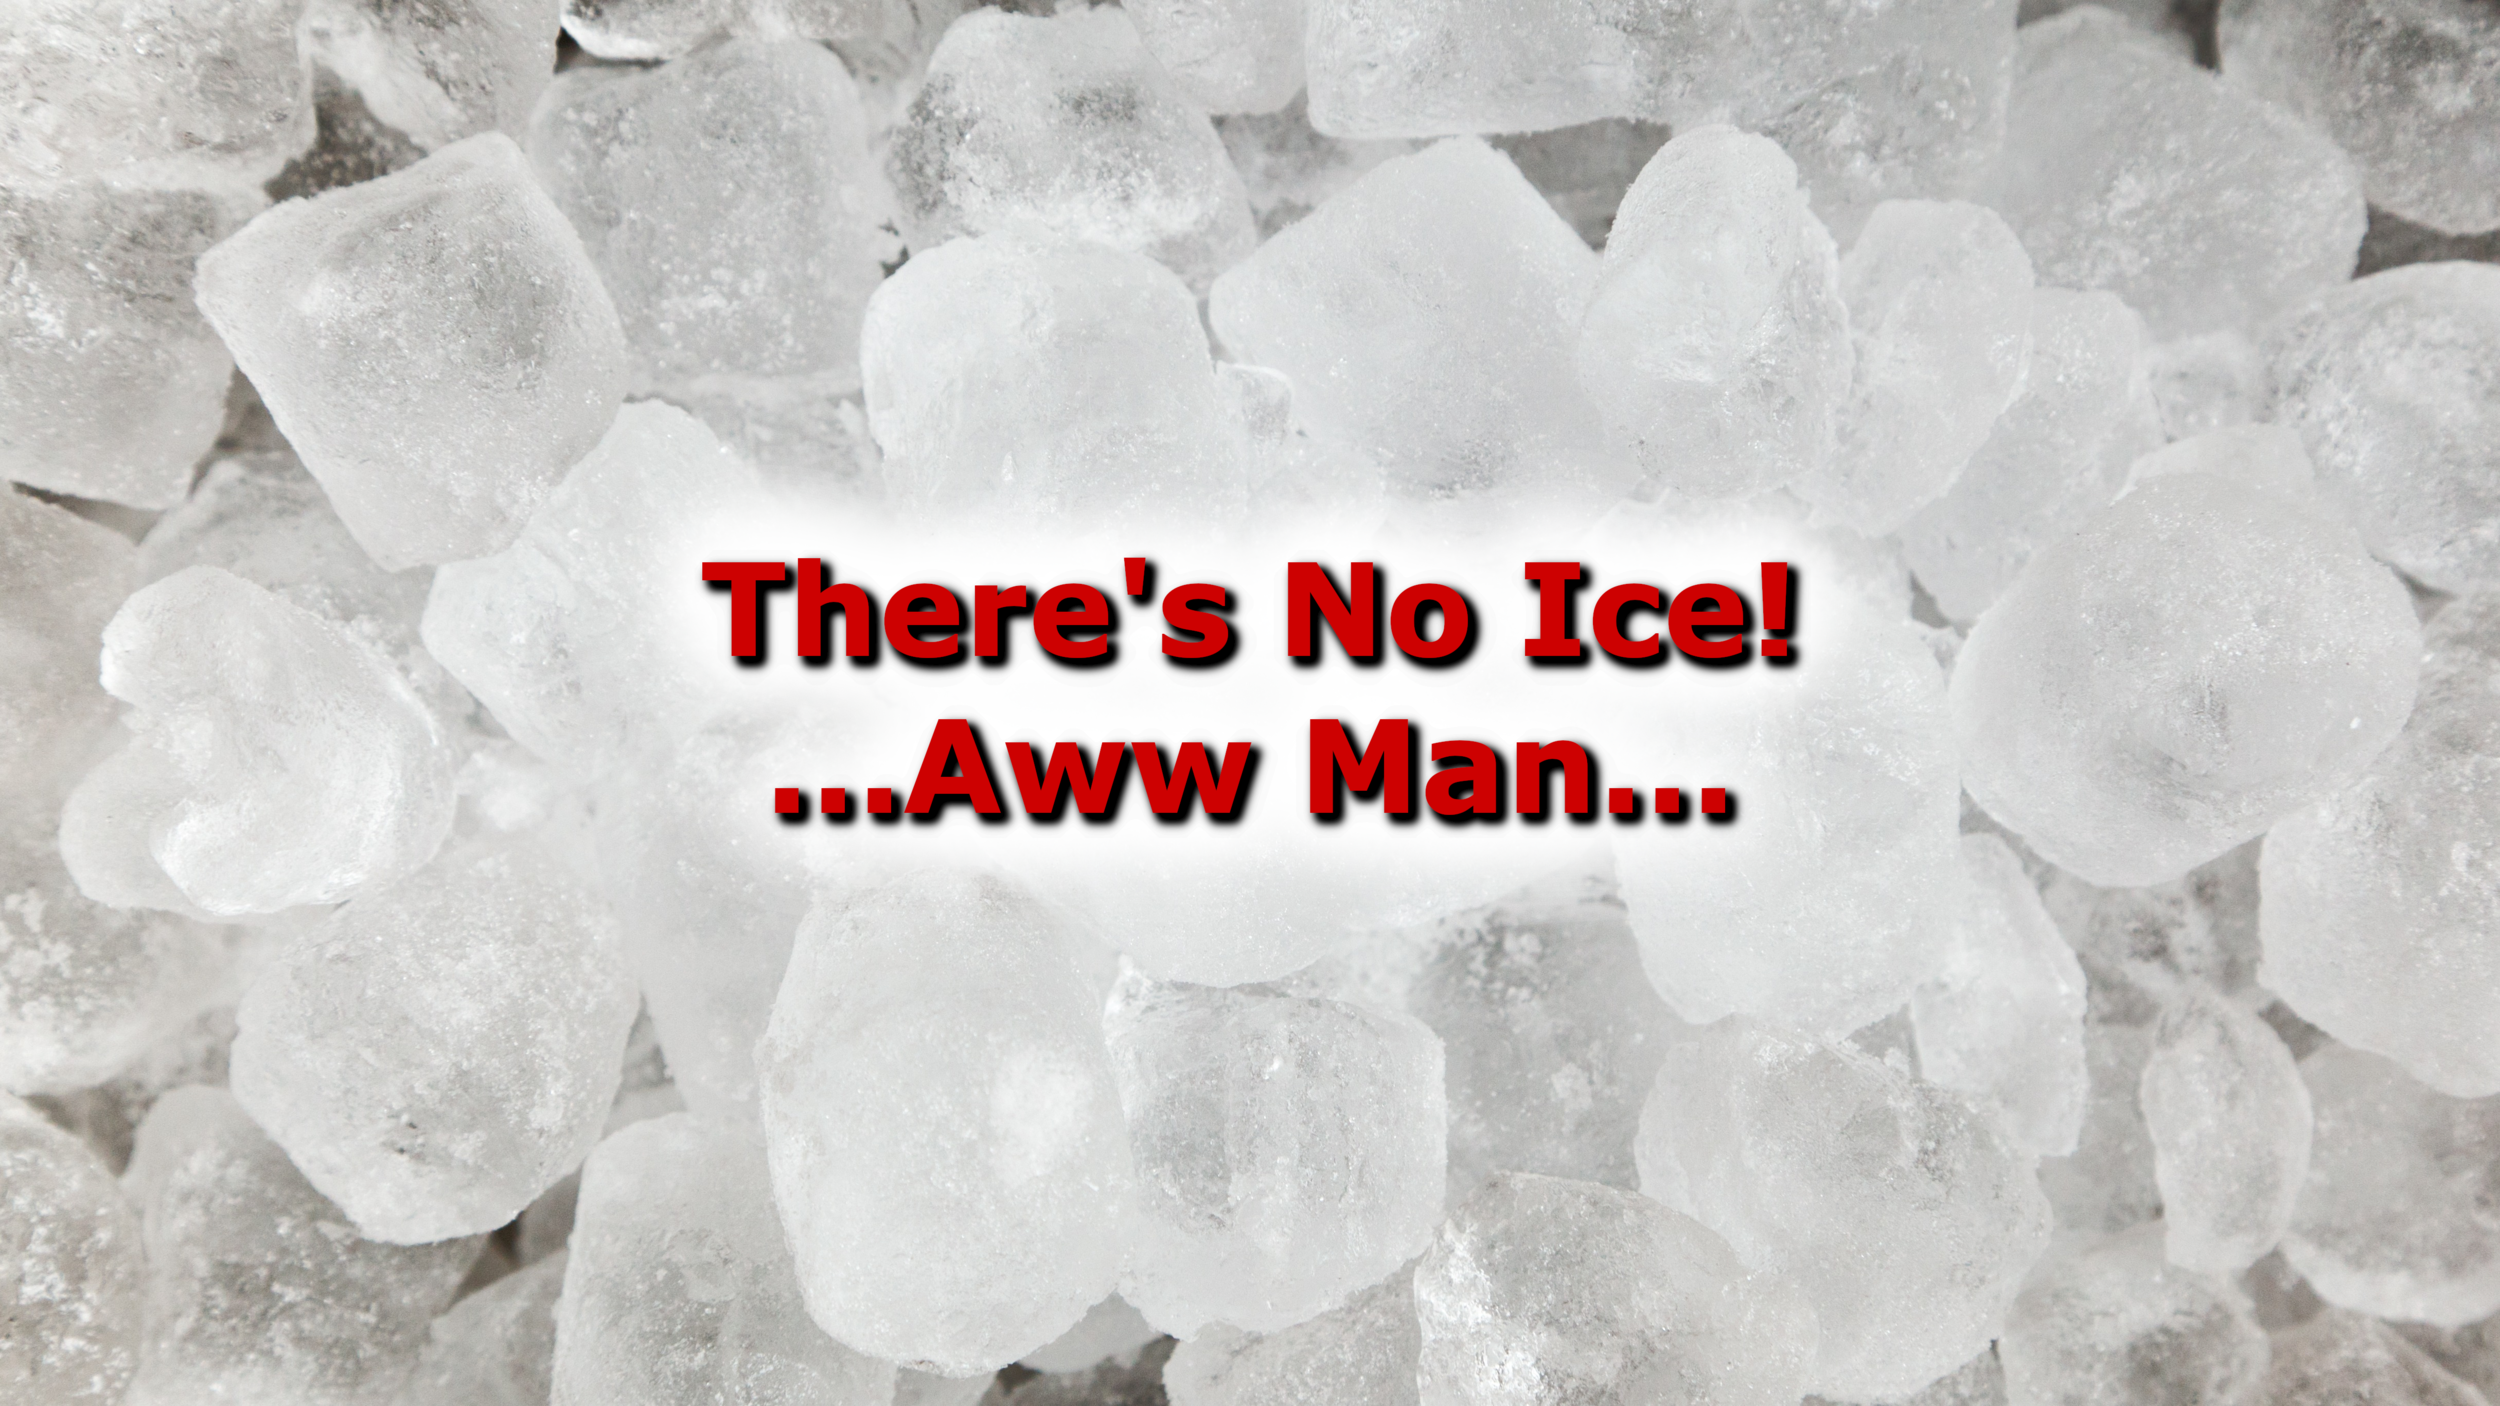 no ice in germany.jpeg